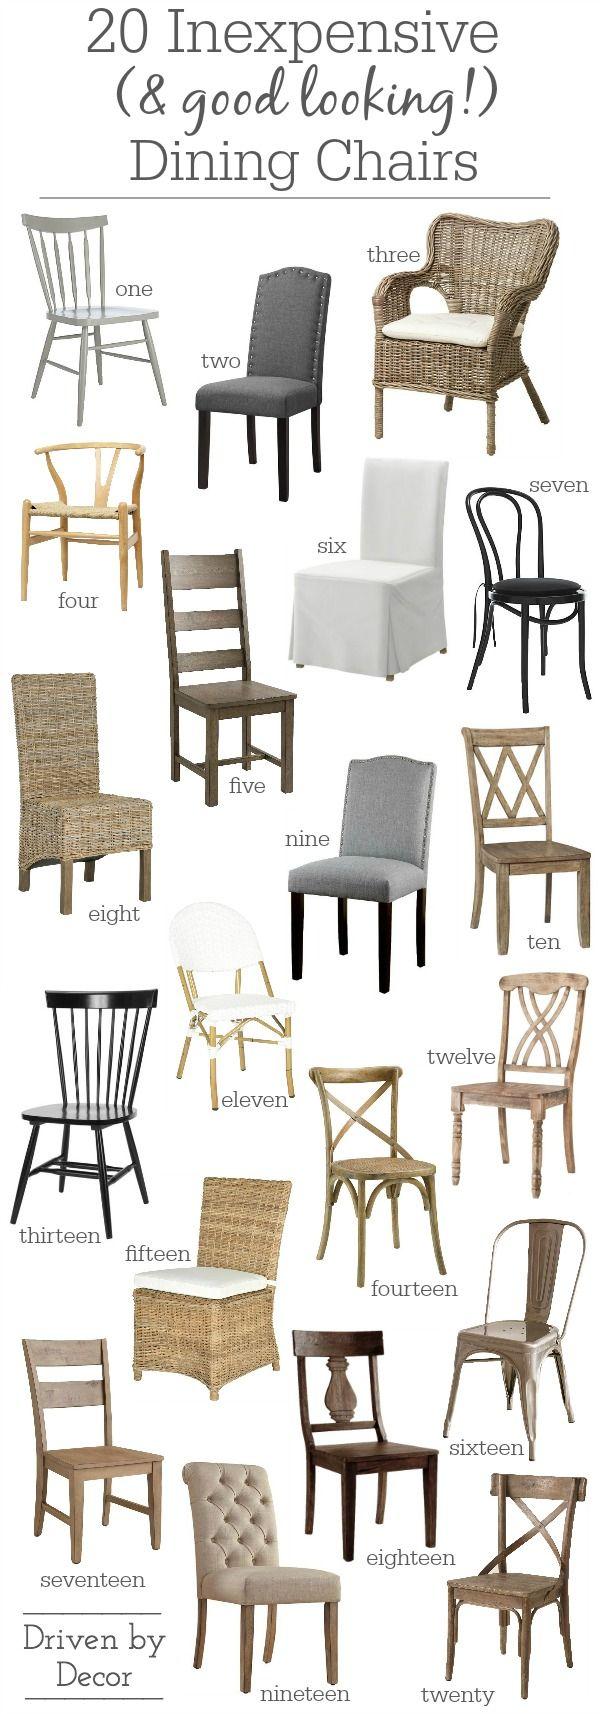 15 Inexpensive Dining Chairs (That Don't Look Cheap!)